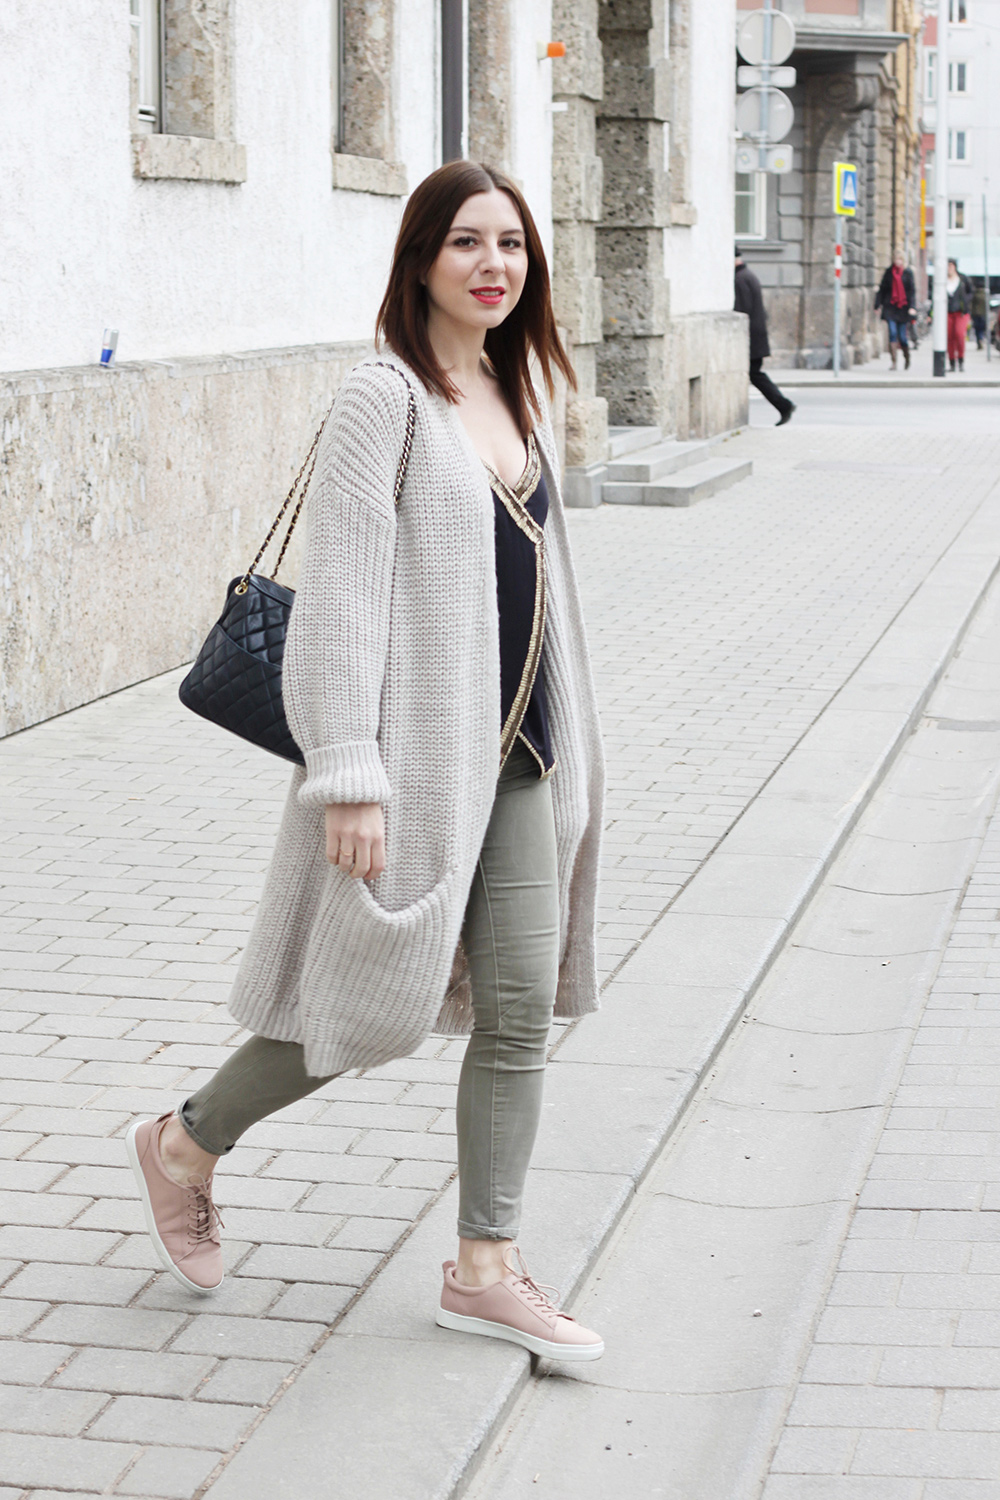 who is mocca, fashionblog, tirol, tirolerin, austria, oesterreich, blogger, sneaker kombinieren, how to style, how to wear, kombinieren, skinny jeans, khaki, oversize cardigan, tasche chanel jumbo vintage camera tassel bag, pailletten top hm, roter lippenstift mac, whoismocca.com